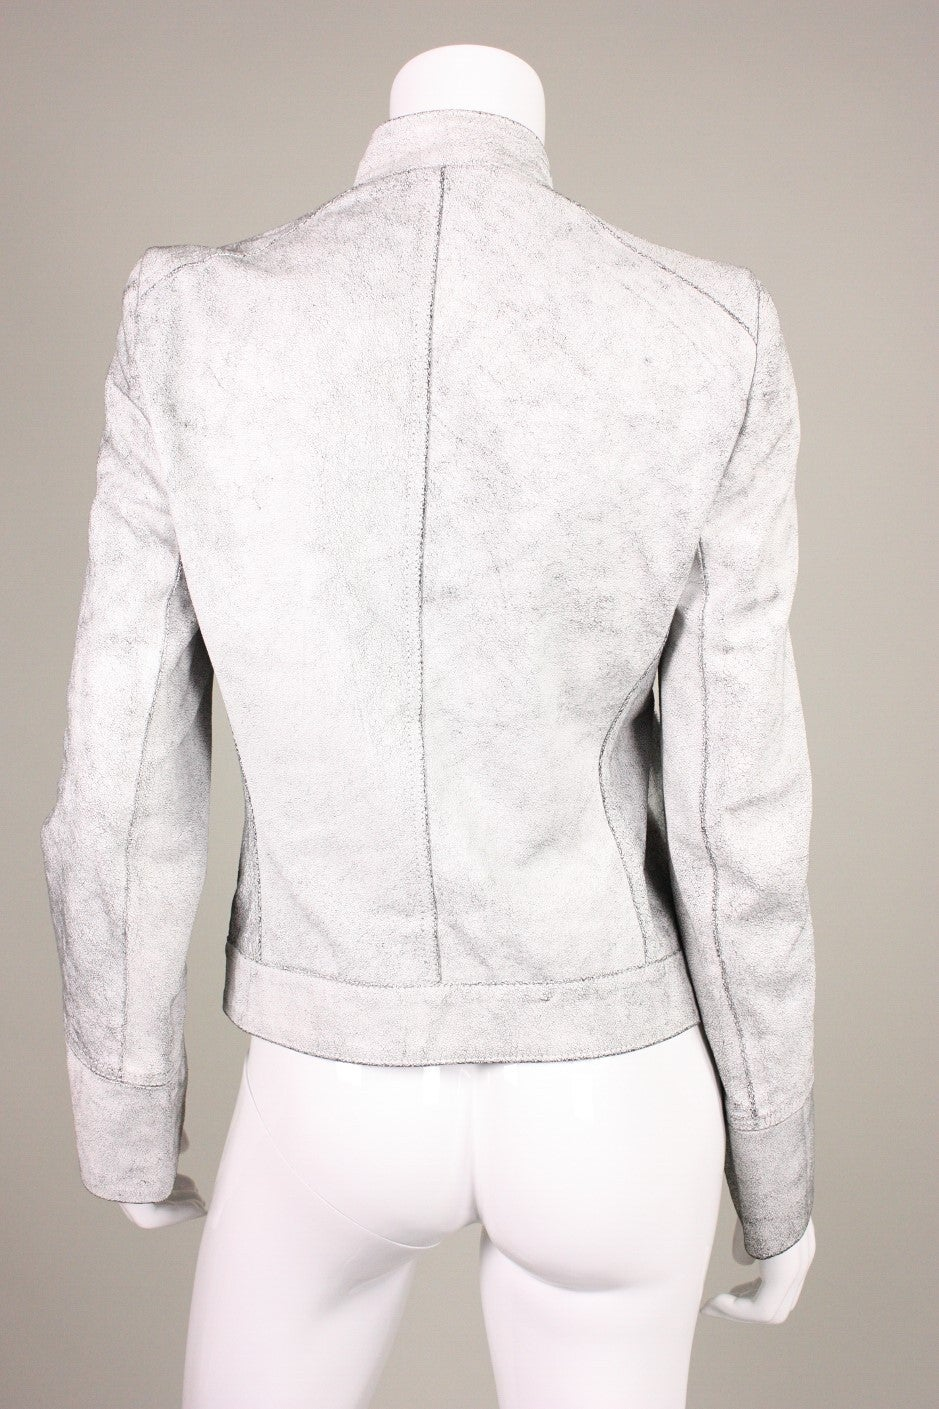 Ann Demeulemeester Textured Leather Jacket 4